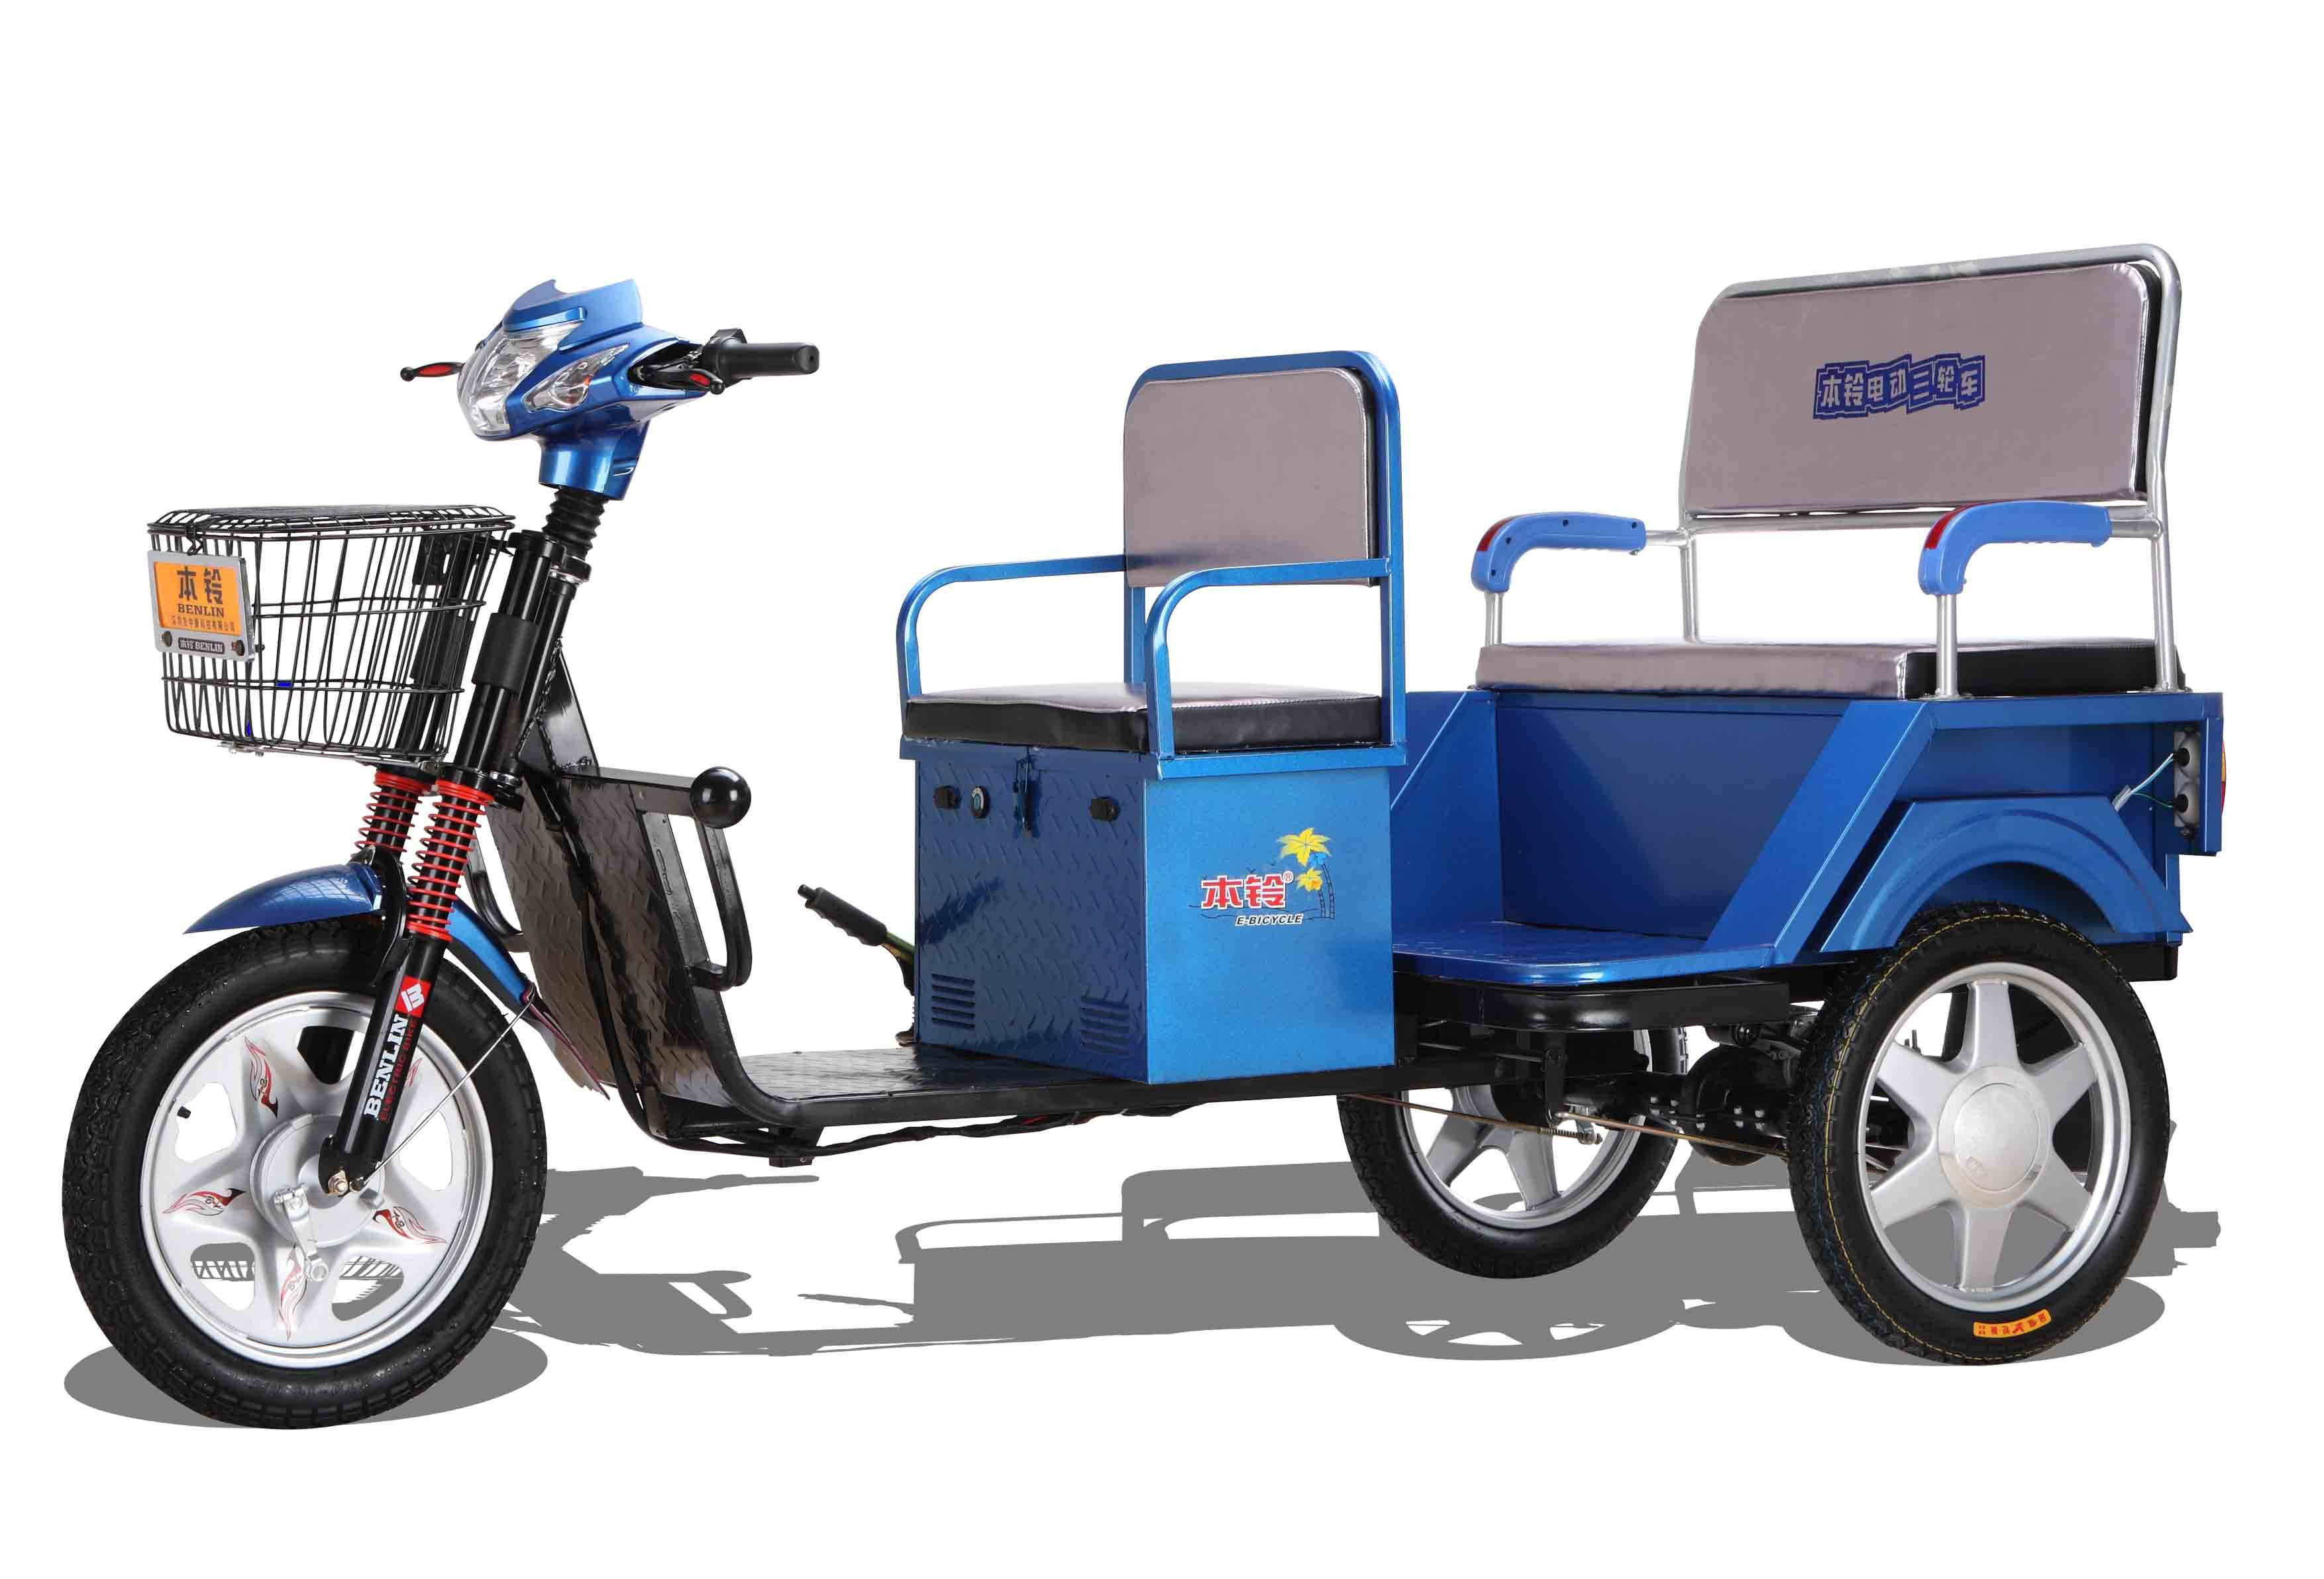 48V500W 18' inches factory electric tricycle three-wheeler bike 3wheel